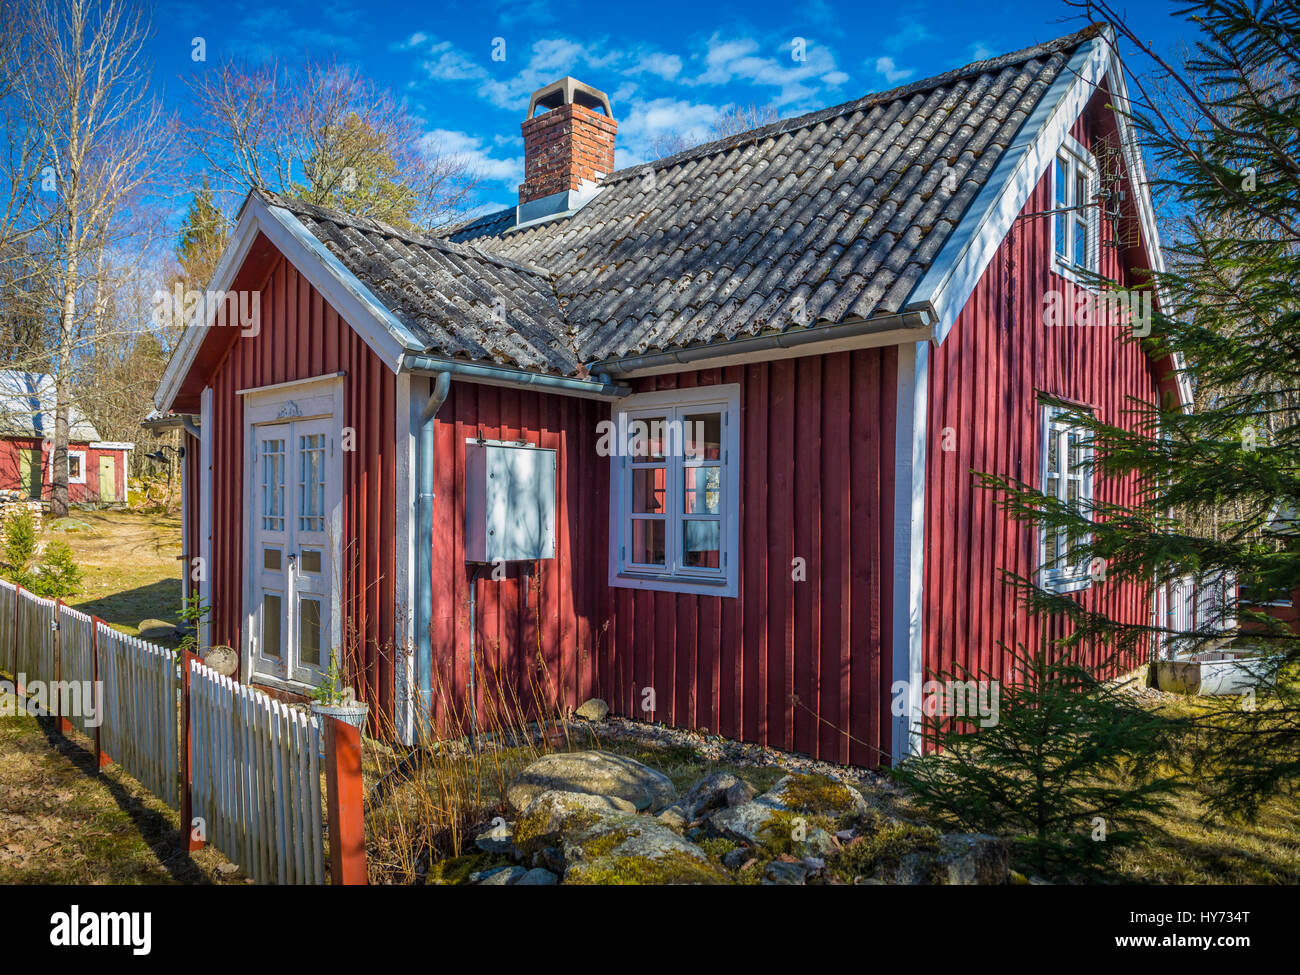 Cottage in the southern province of Blekinge in Sweden, near Kyrkhult. Stock Photo